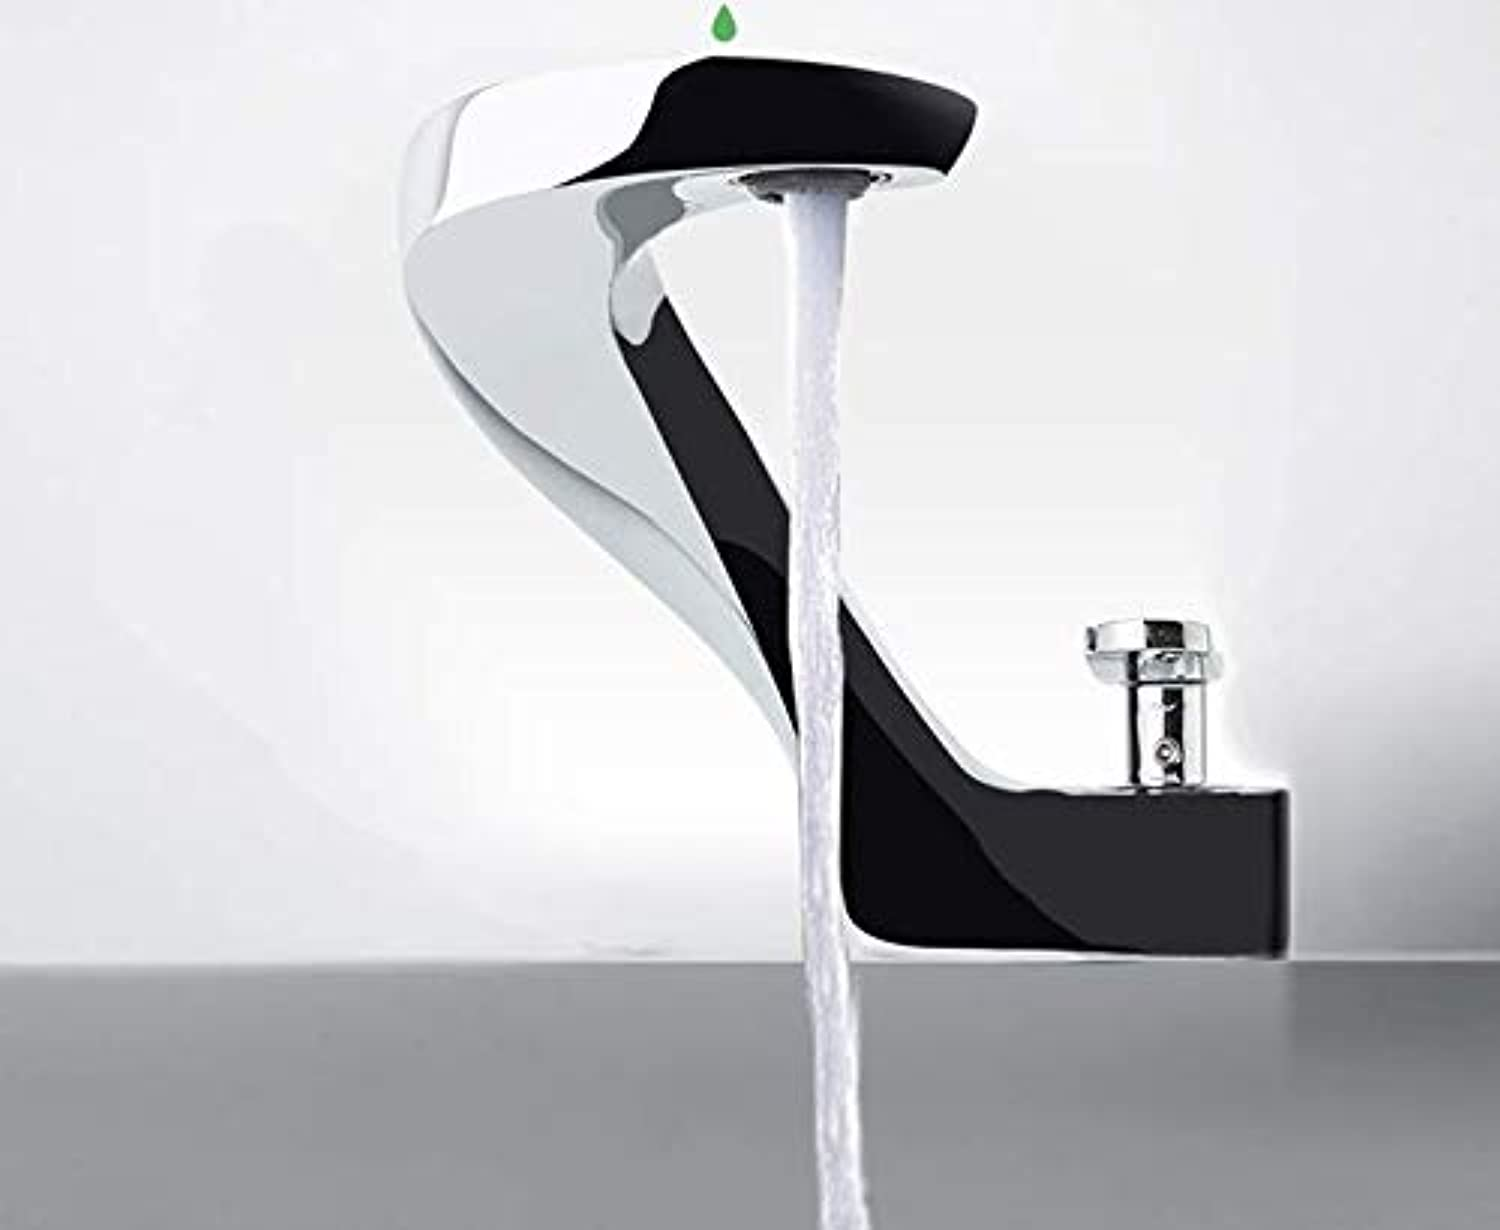 Xiehao Modern Washbasin Design Bathroom Faucet Mixer Waterfall Hot and Cold Water Taps for Basin of Bathroom